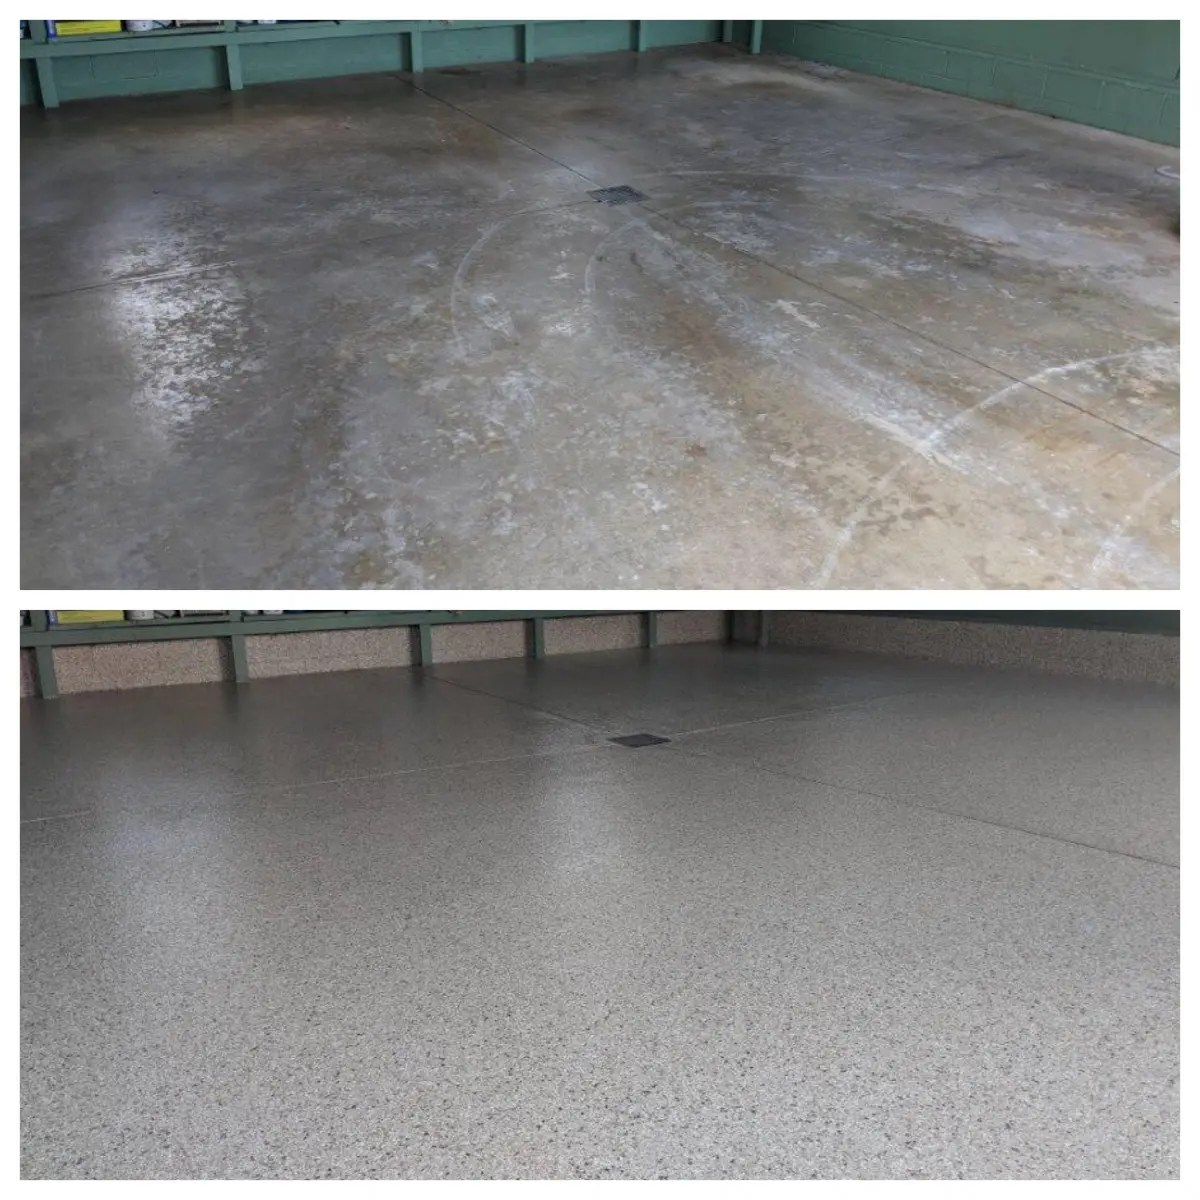 How To Repair Epoxy Floor Coating One Day Custom Floors Concrete Resurfacing Floor Coatings